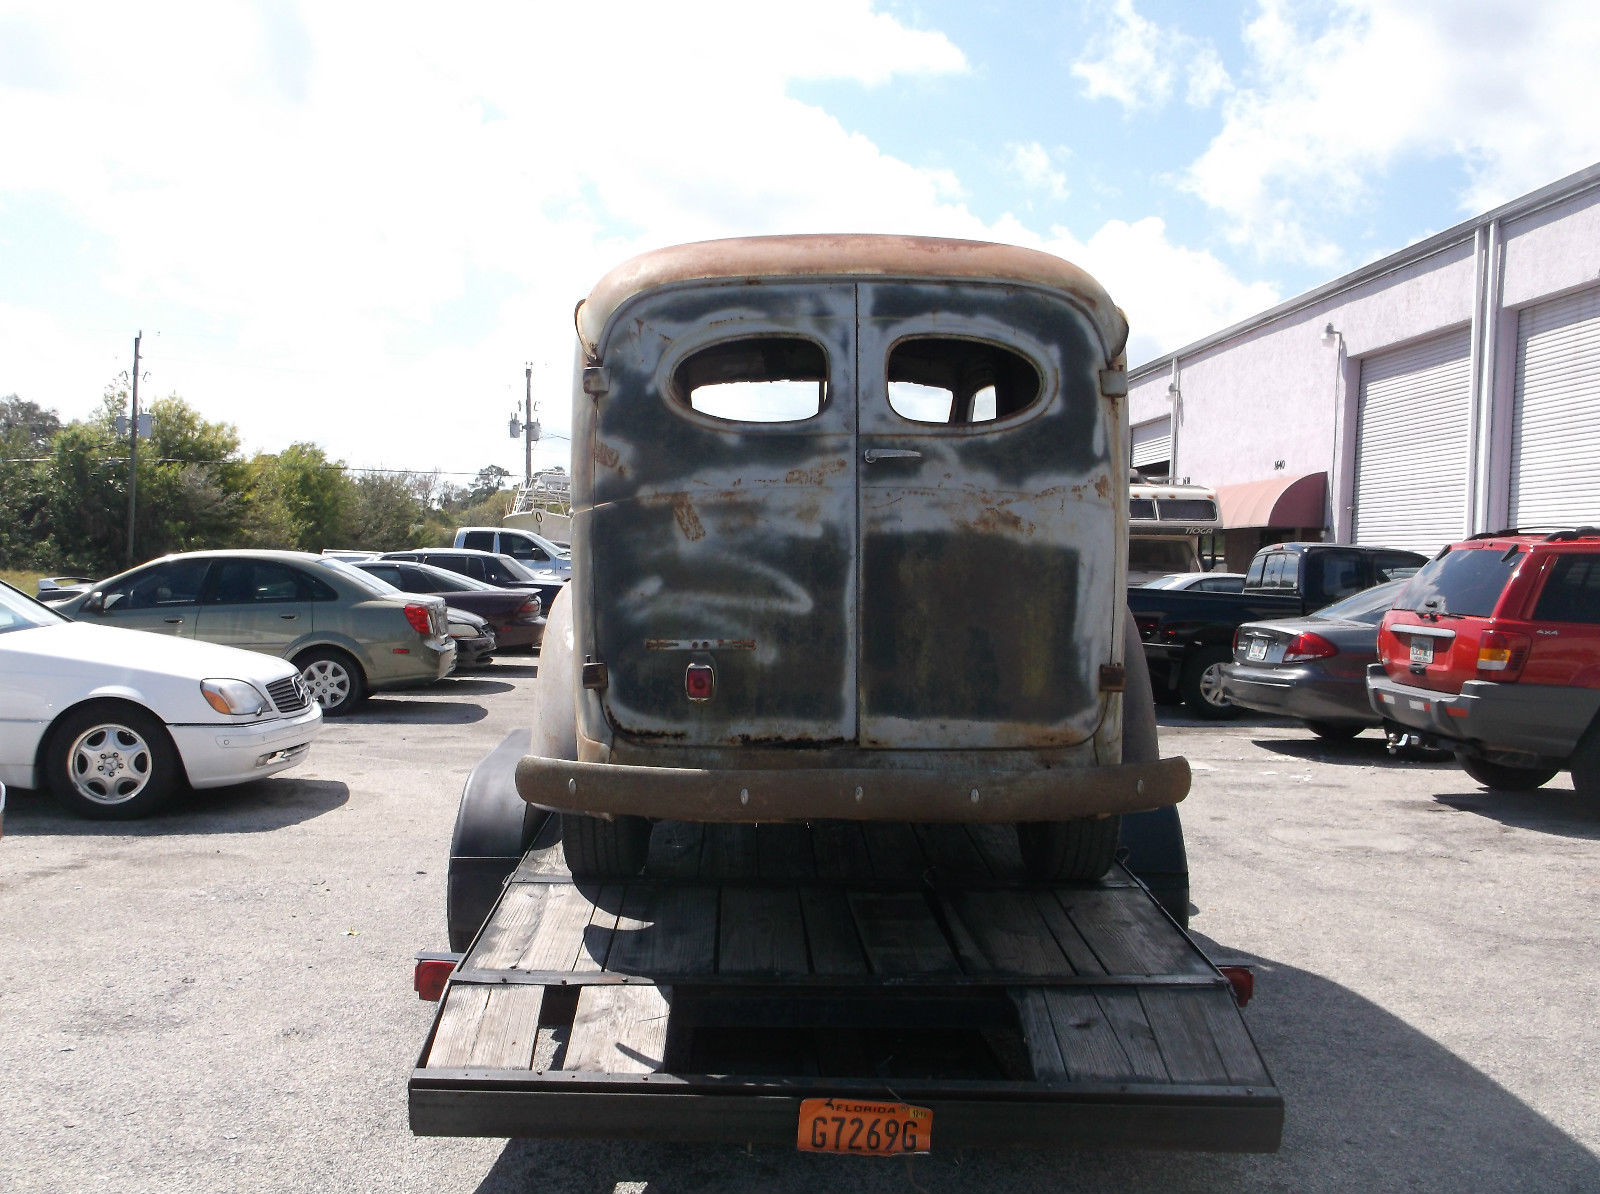 1941 Panel Truck Wagon Sedan Delivery Look Super Rare Classic Chevy Station Chevrolet Other Prevnext